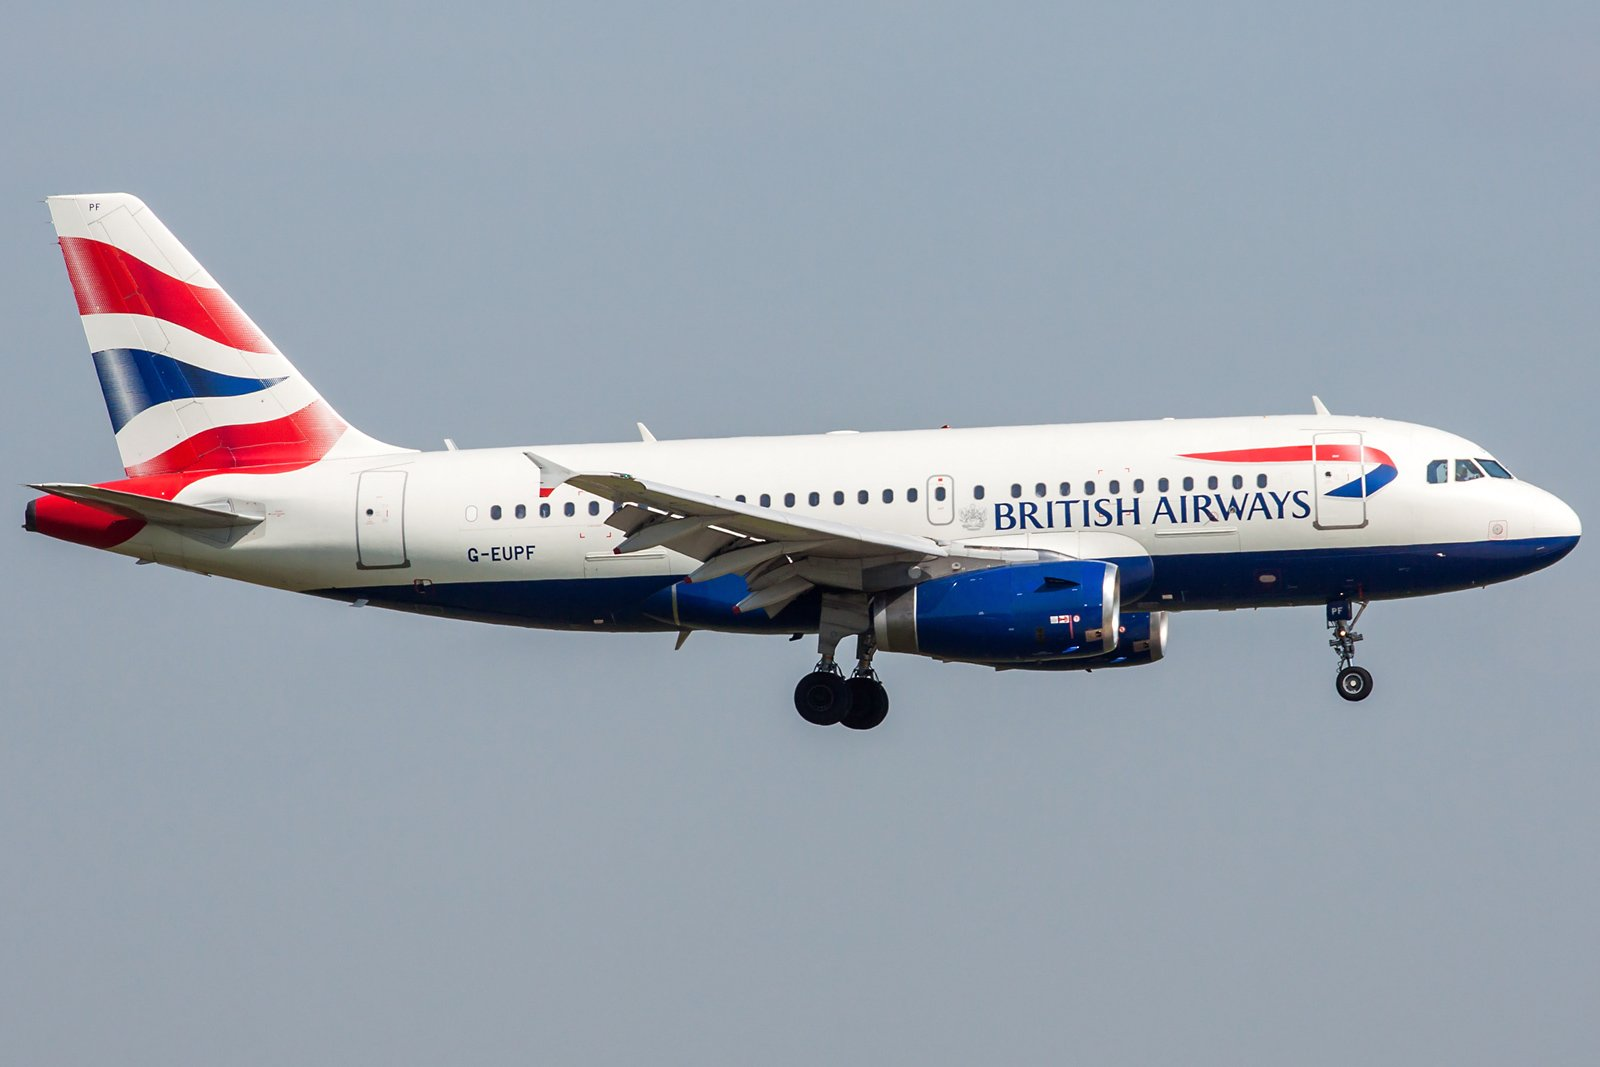 British Airways Airbus A319-131 G-EUPF